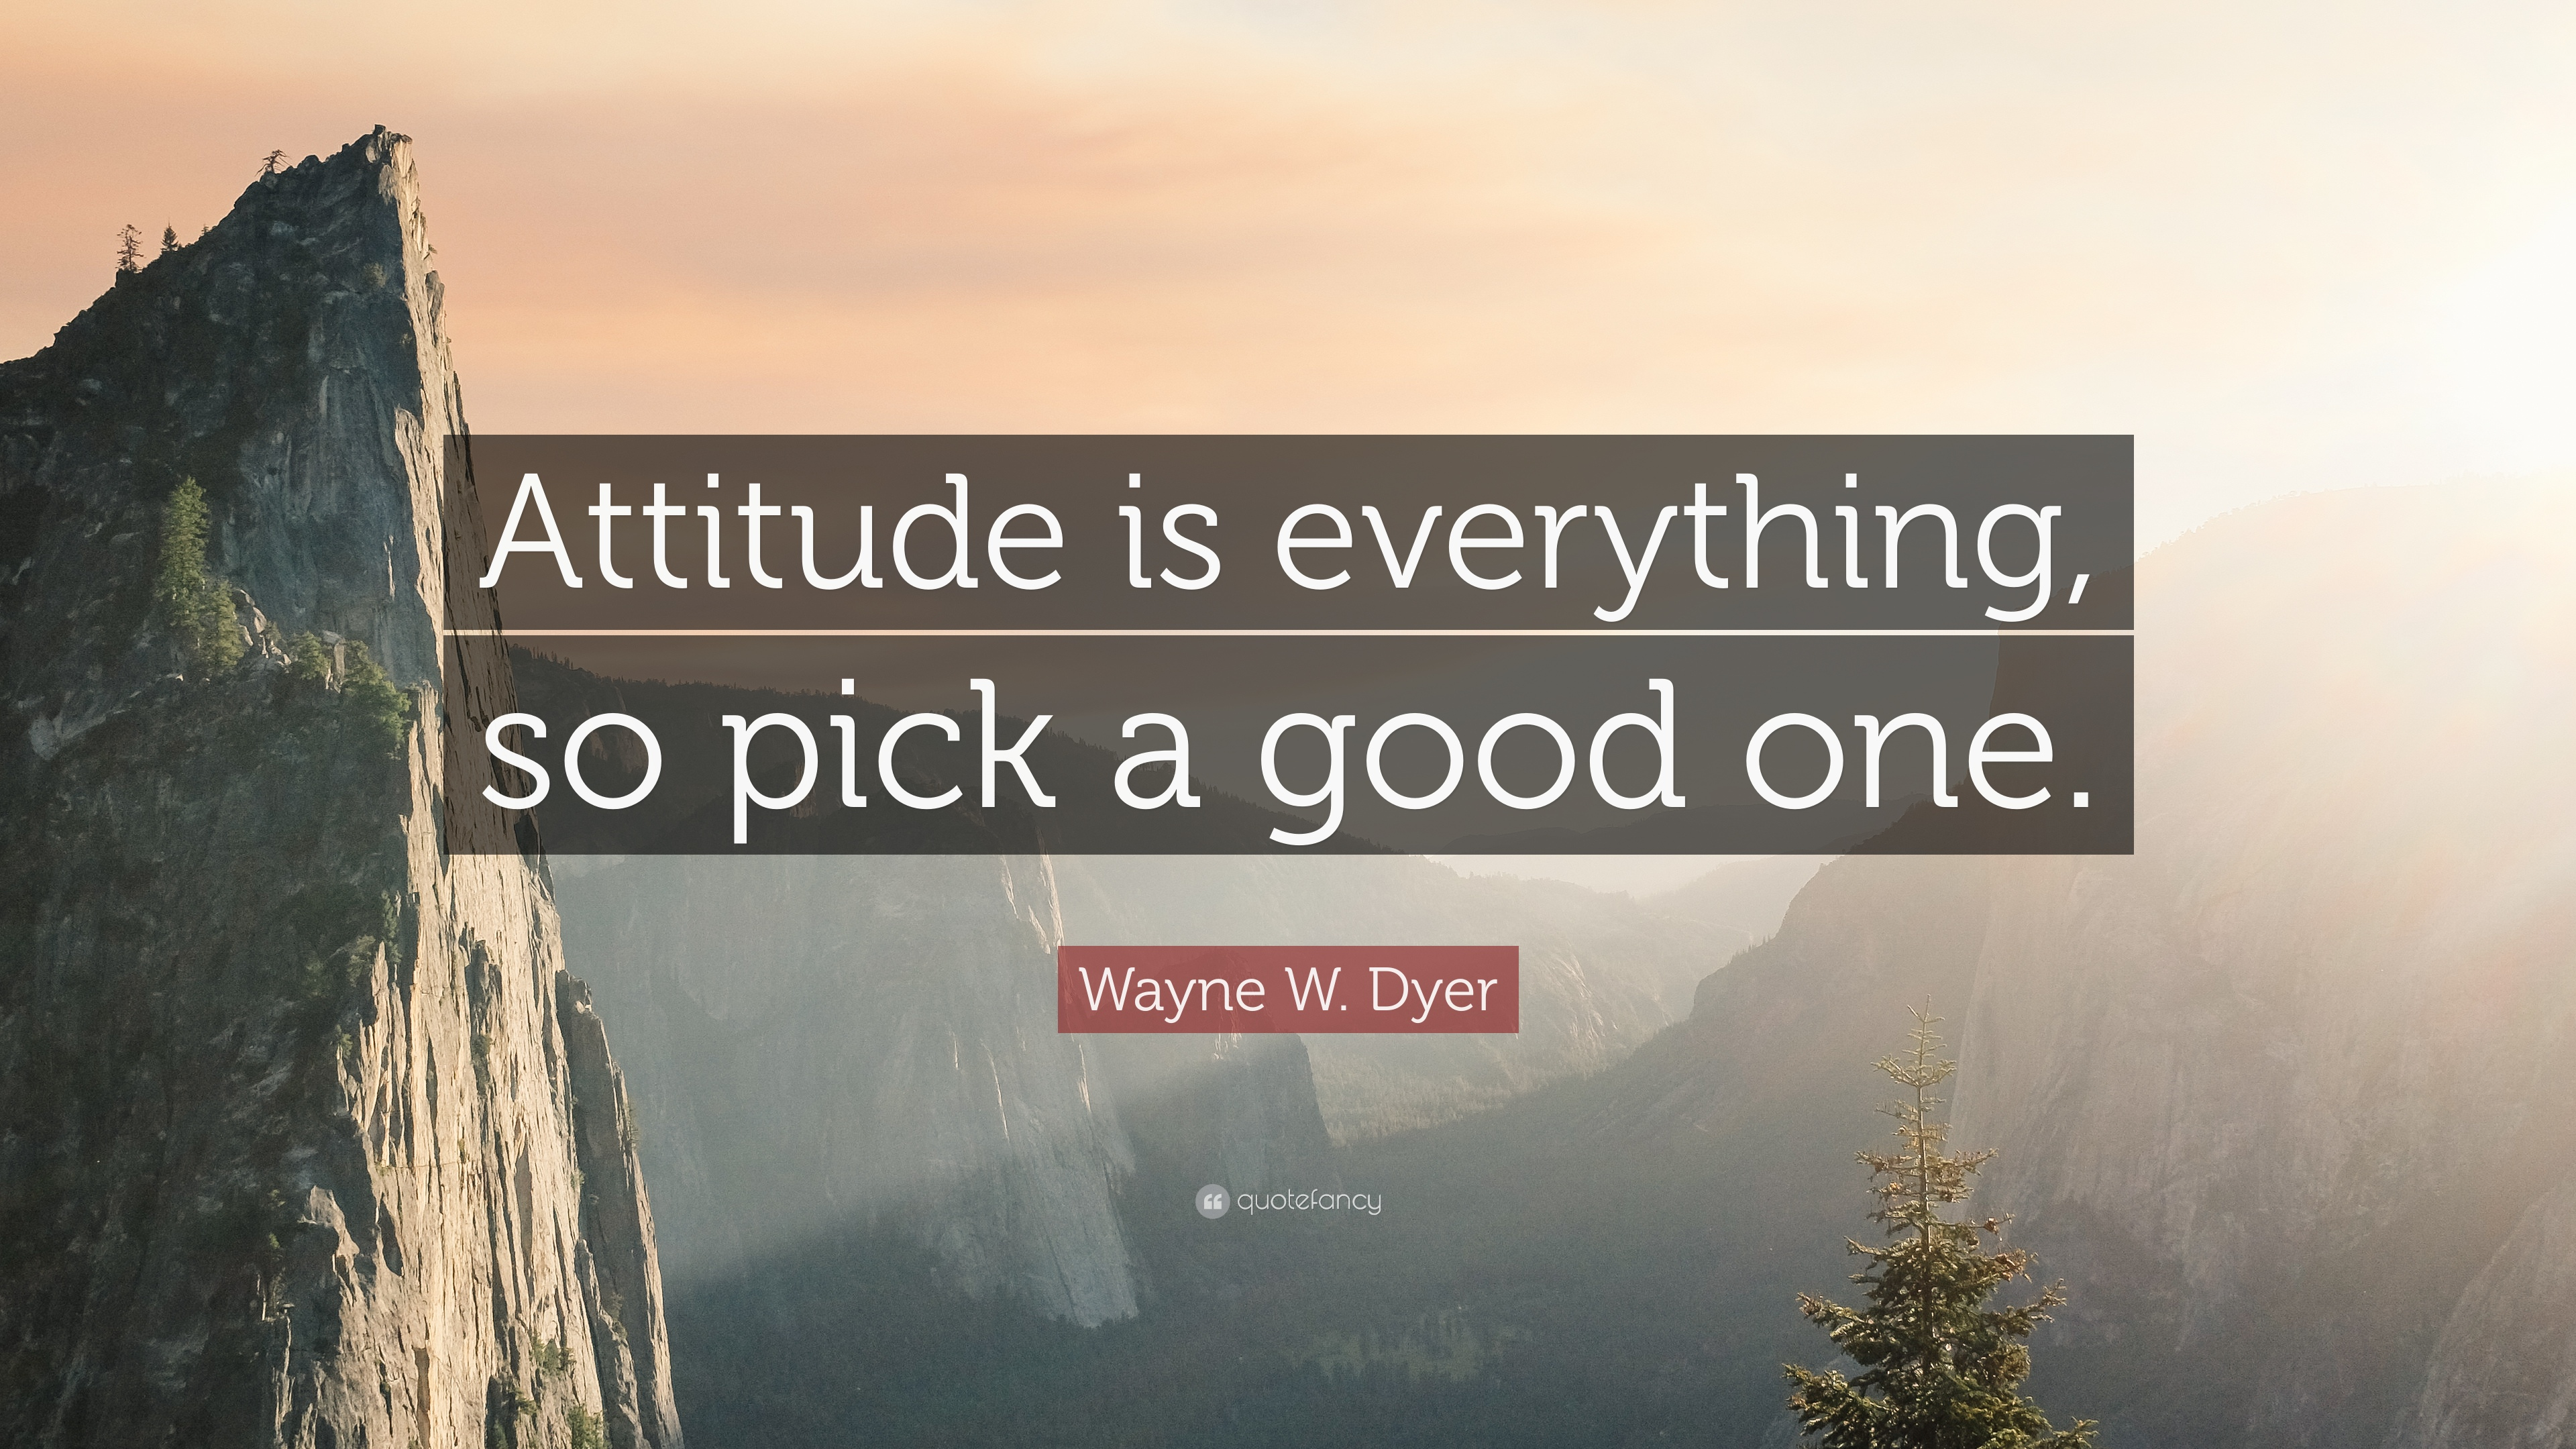 Wayne W Dyer Quote Attitude Is Everything So Pick A Good One